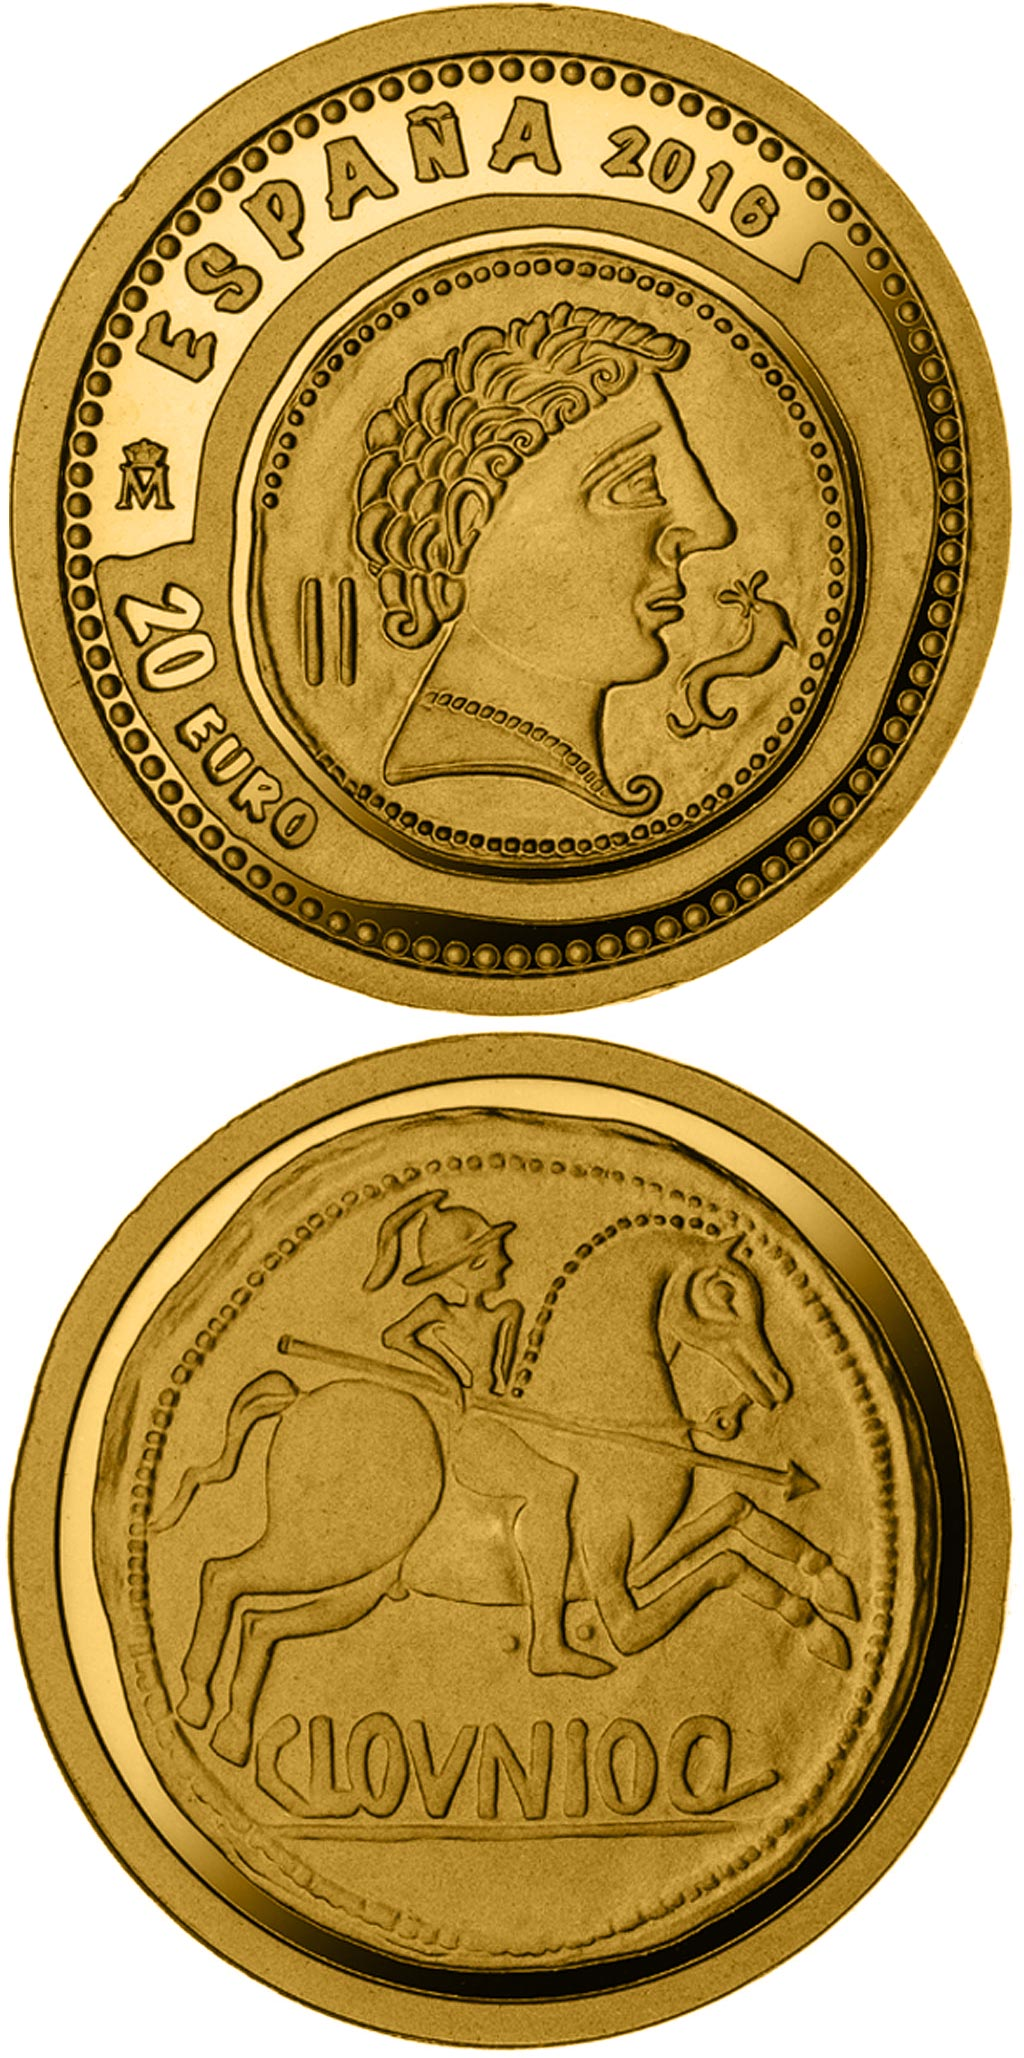 Image of 20 euro coin - 7th Series Numismatic Treasures: As from Clounioq | Spain 2016.  The Gold coin is of Proof quality.